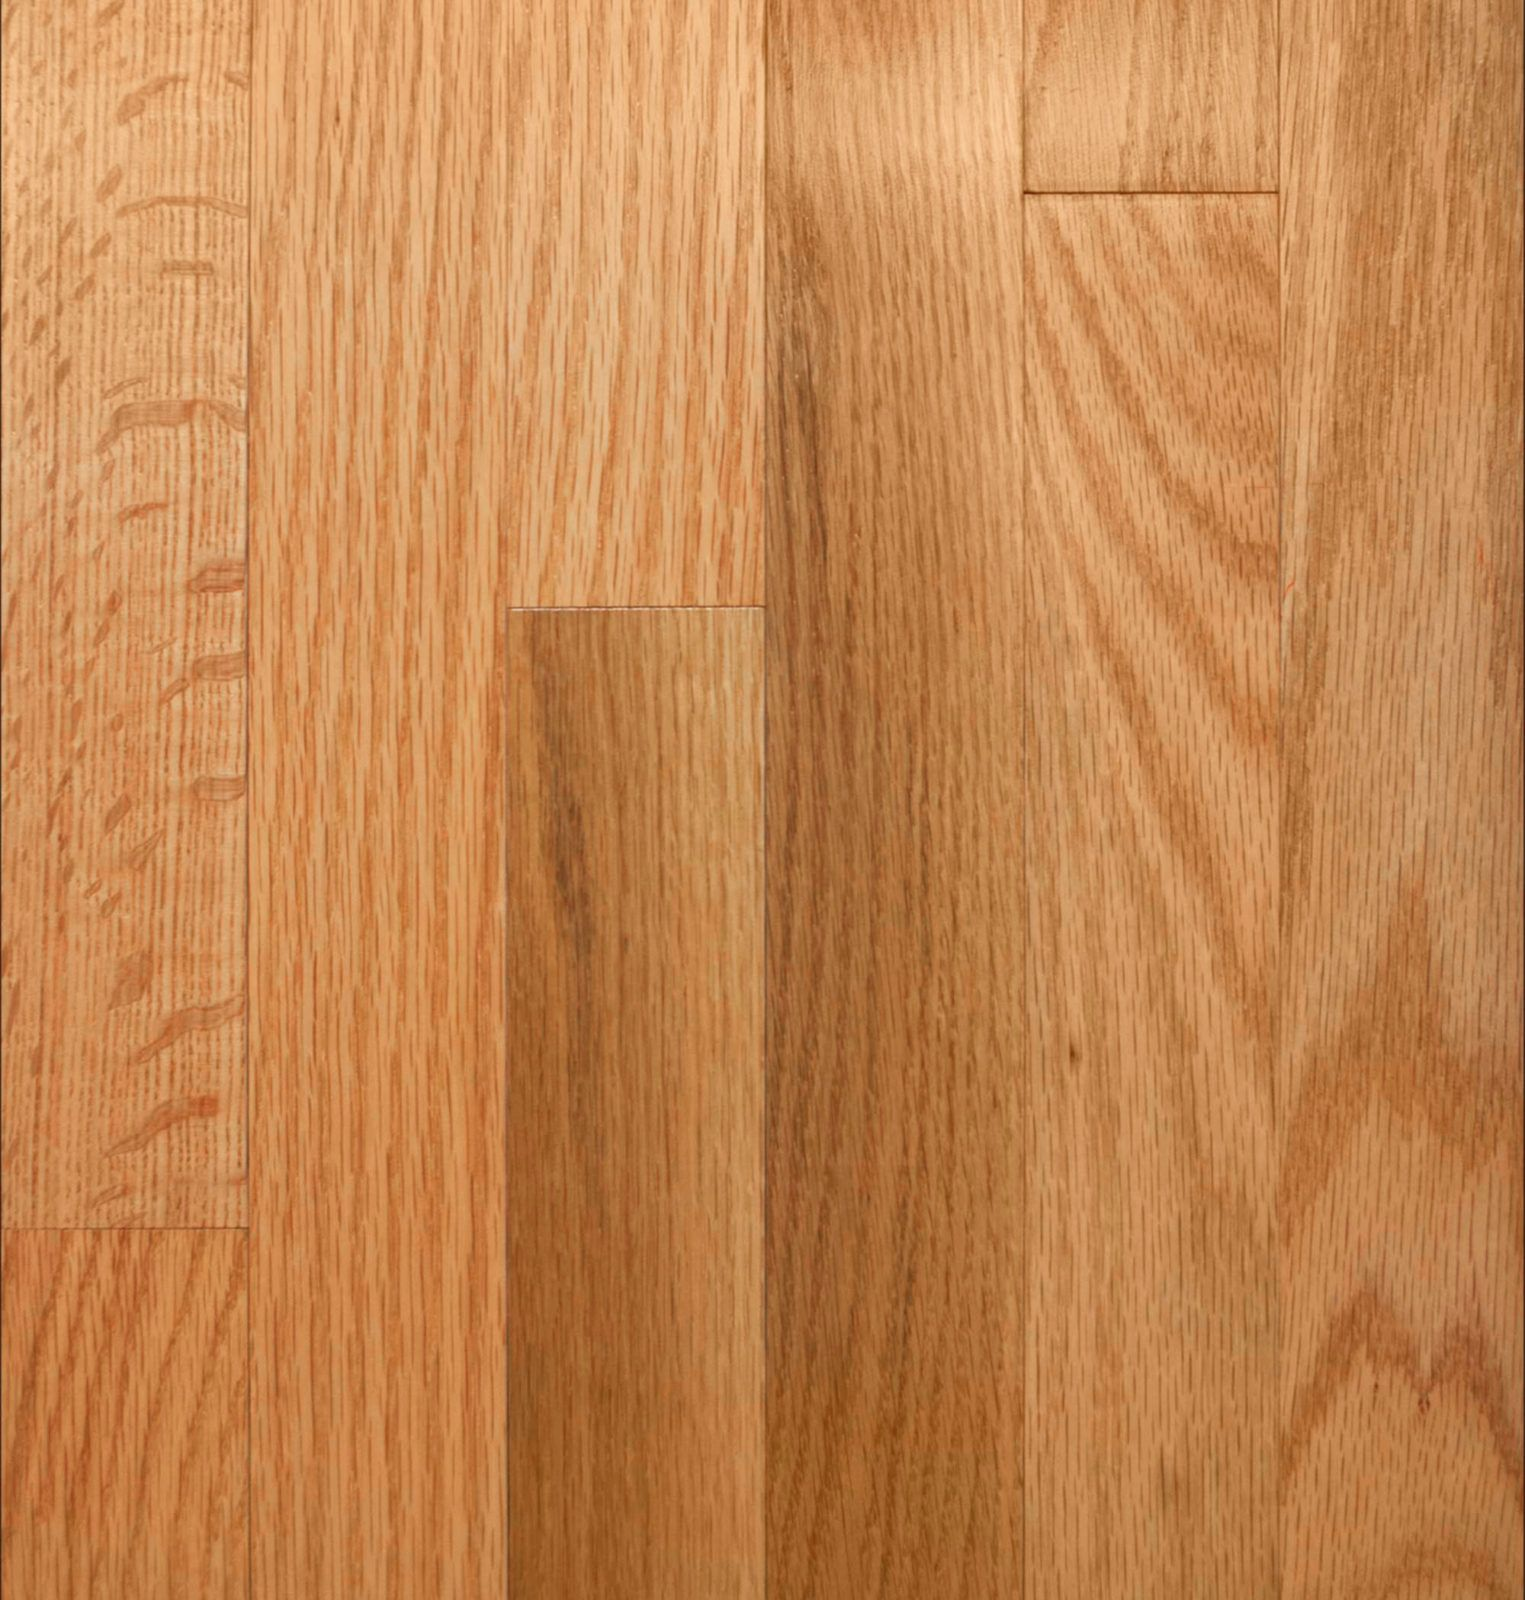 Flooring Hardwood Tile Vinyl And Accessories At Schillings Hardwood Flooring Red Oak